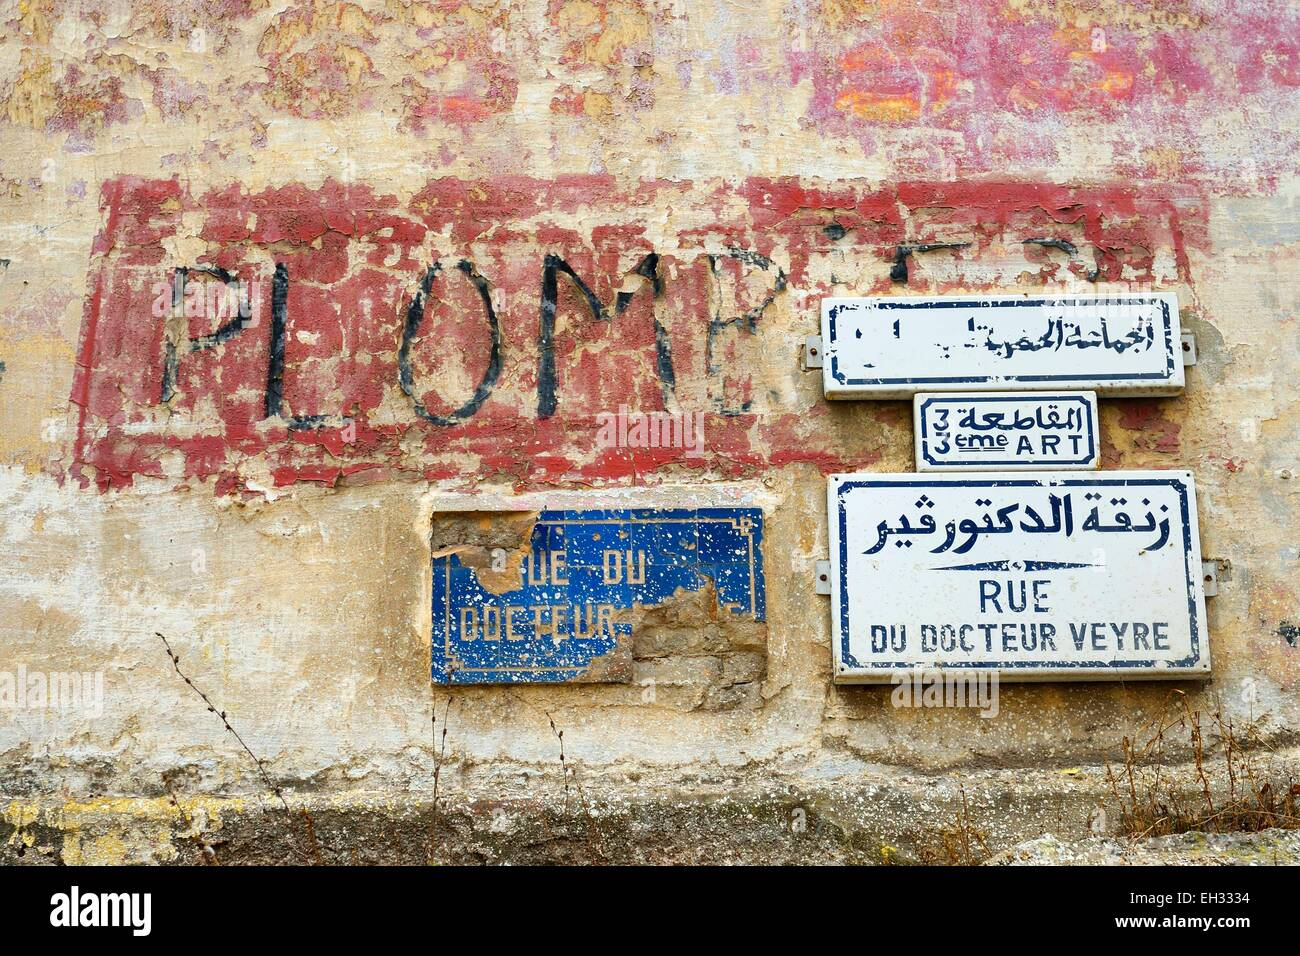 Morocco, Casablanca, street sign - Stock Image